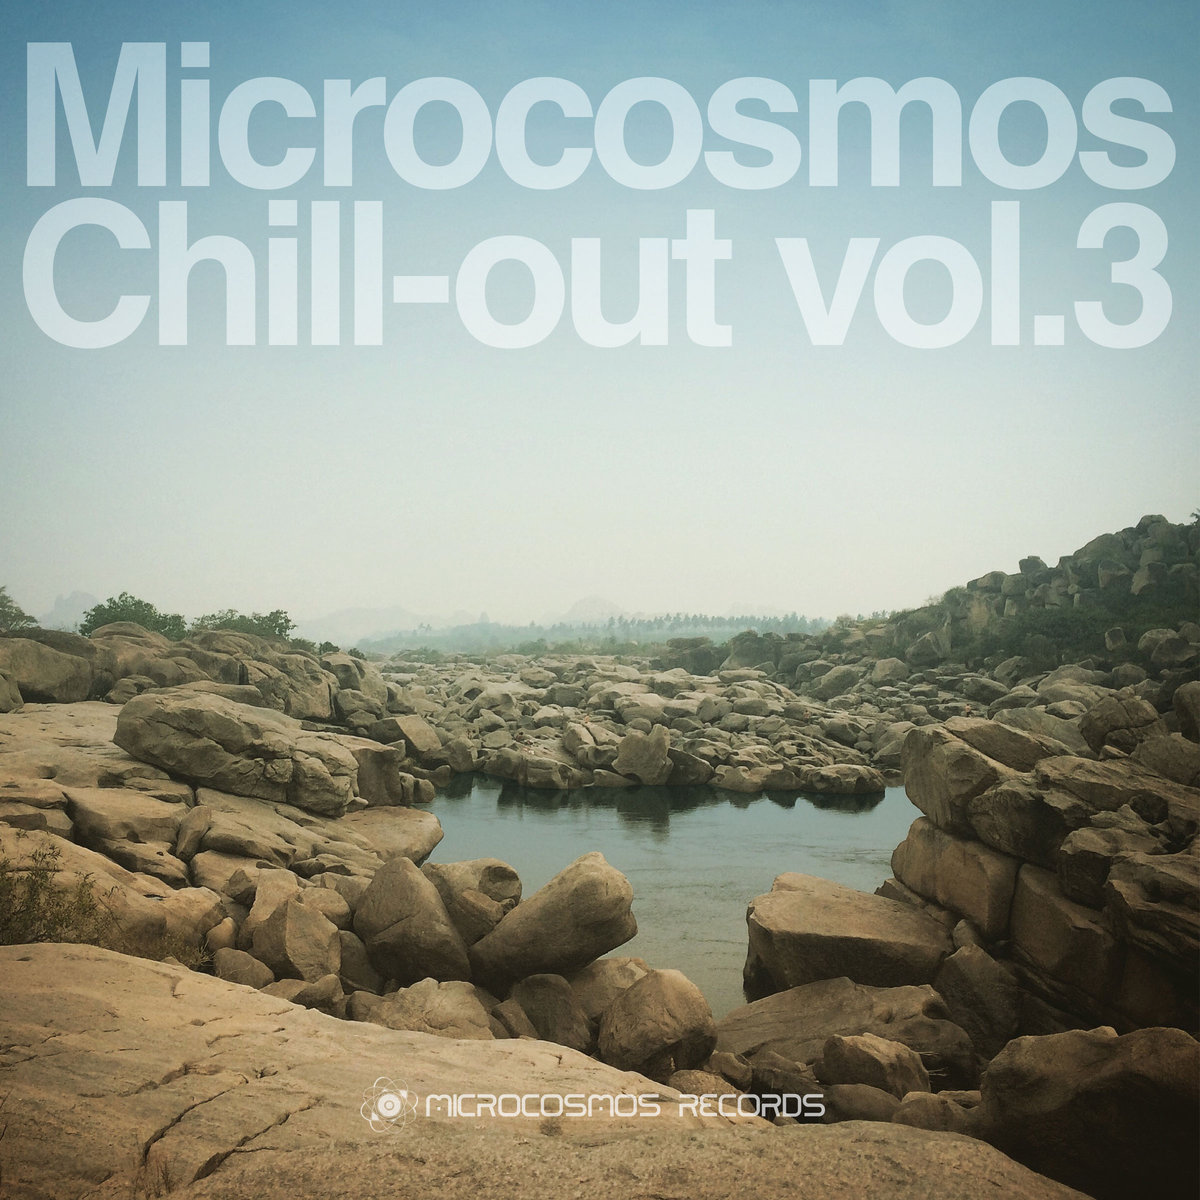 Noraus - Kambuchka @ 'Microcosmos Chill-out Vol.3' album (ambient, chill-out)